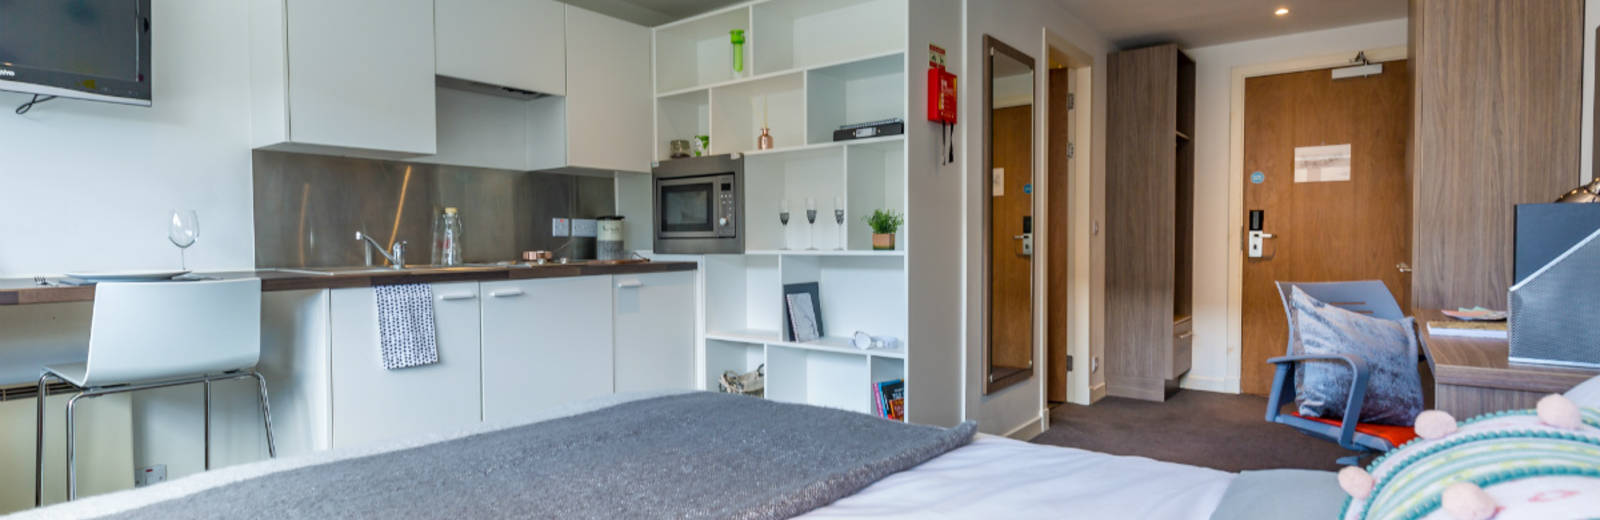 Gallery Apartments Glasgow Student Housing • Reviews ...